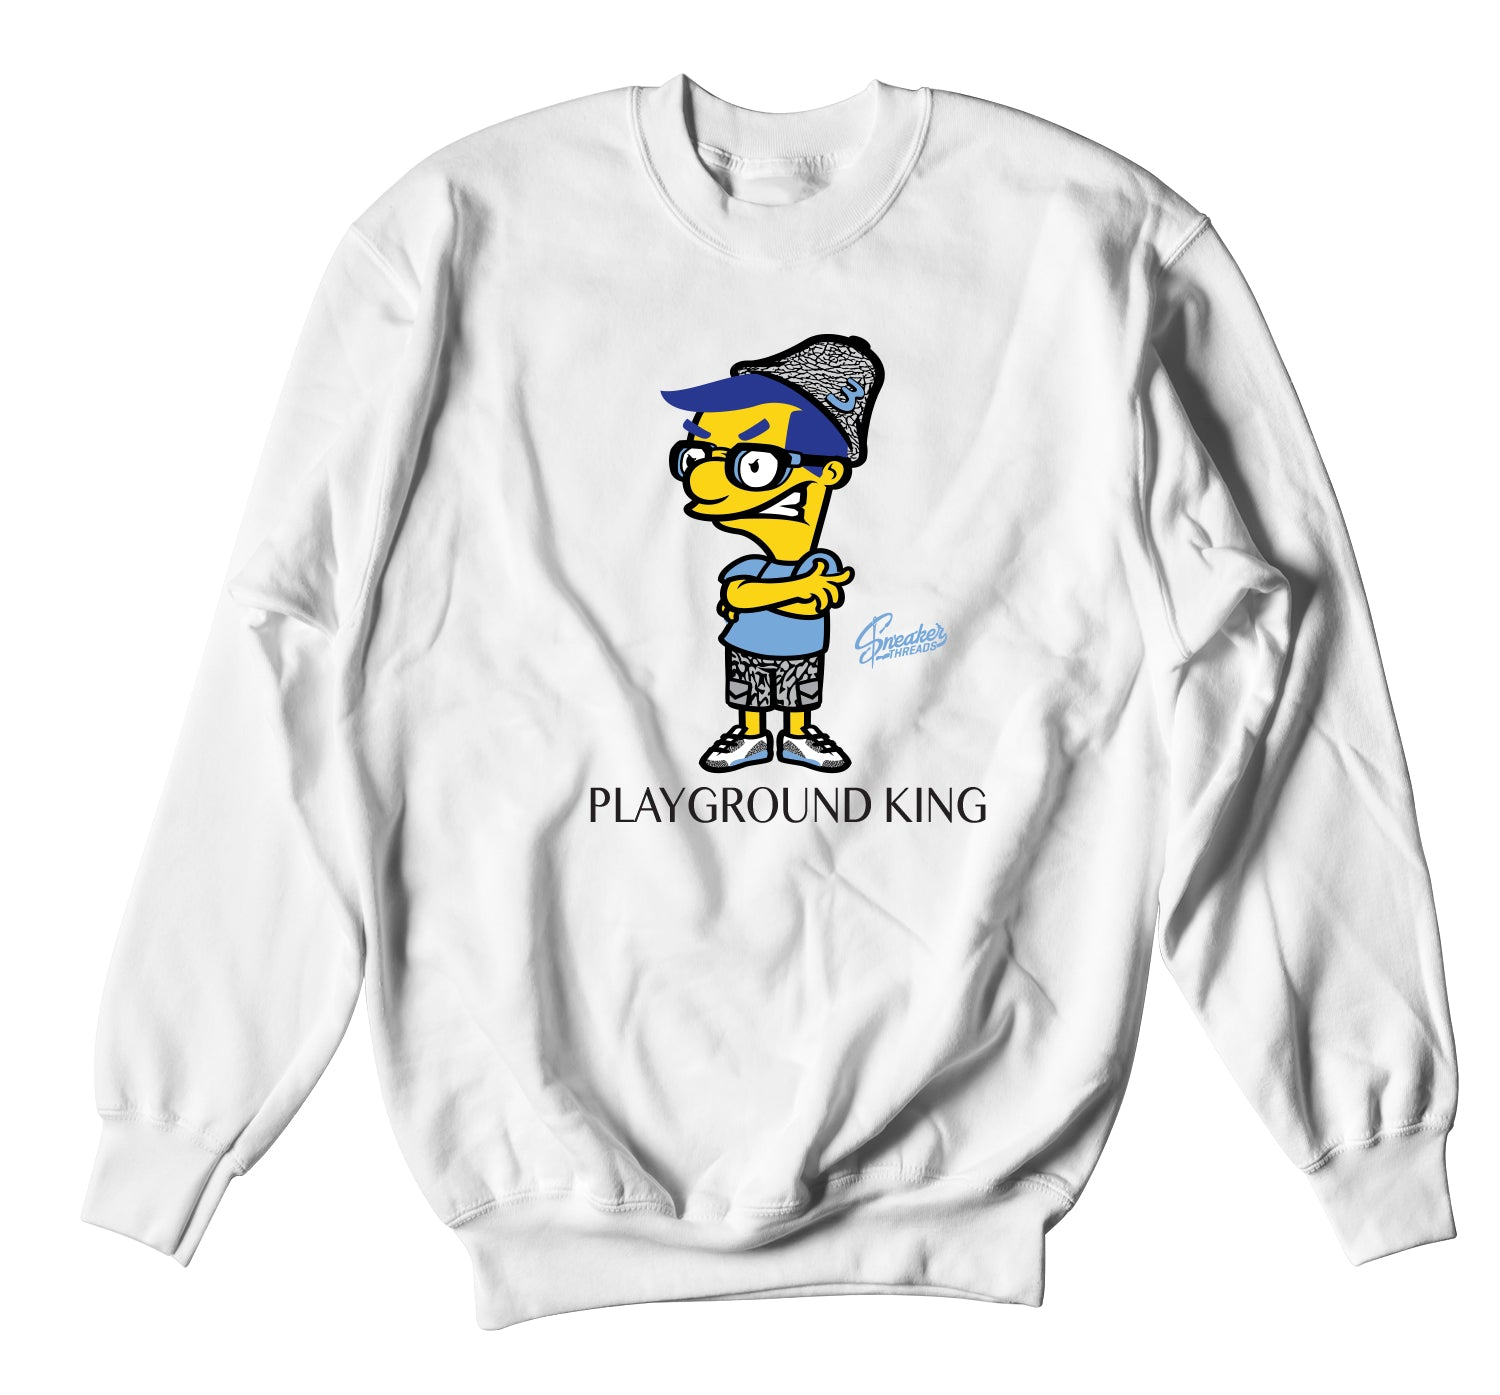 Jordan 3 UNC Sweater - Playground King - White